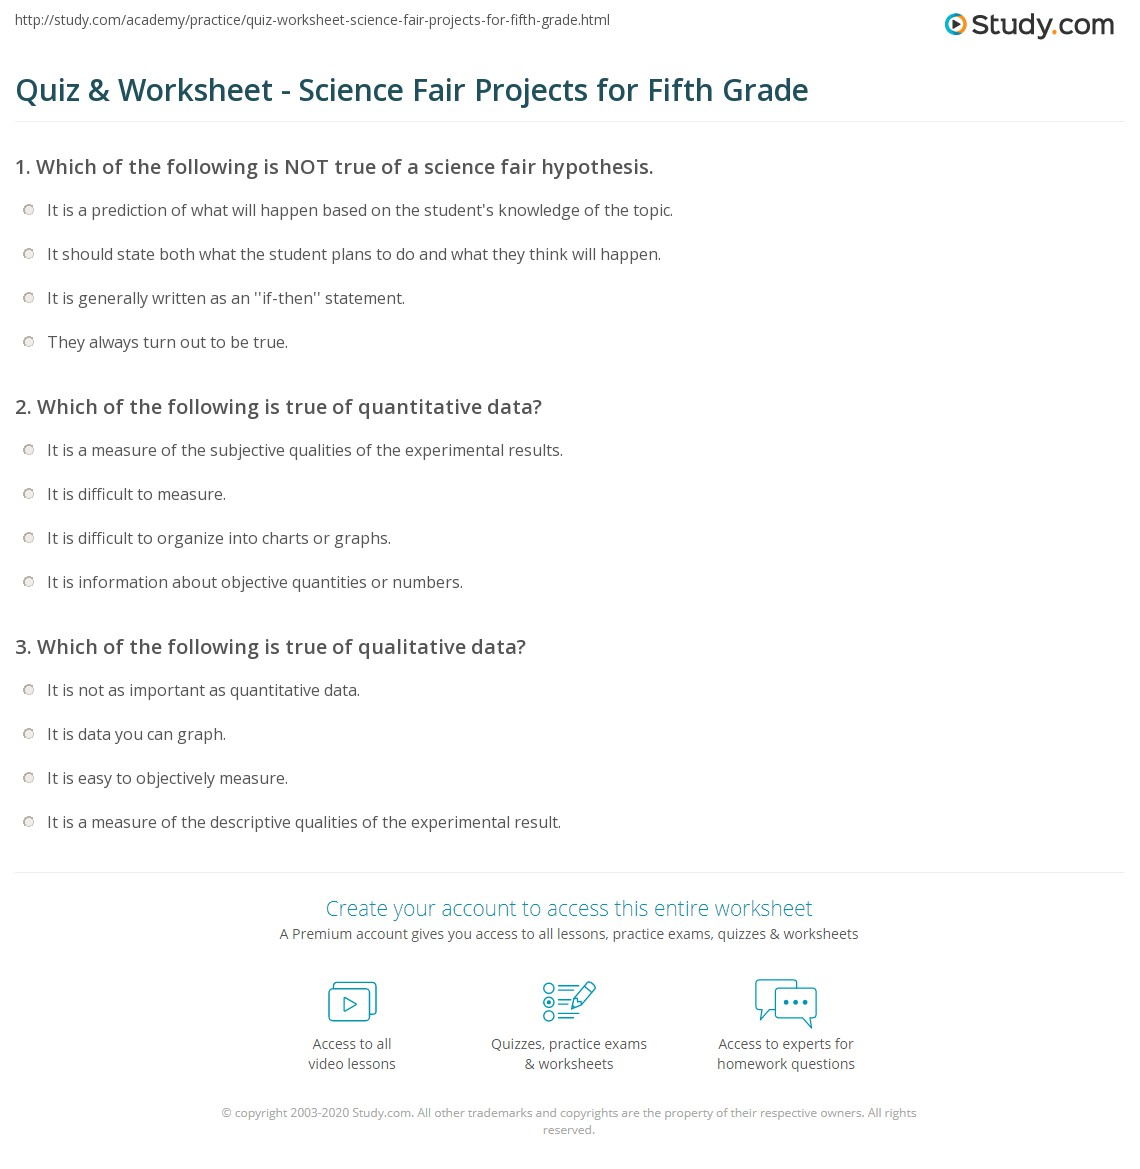 Quiz Worksheet Science Fair Projects For Fifth Grade Studycom